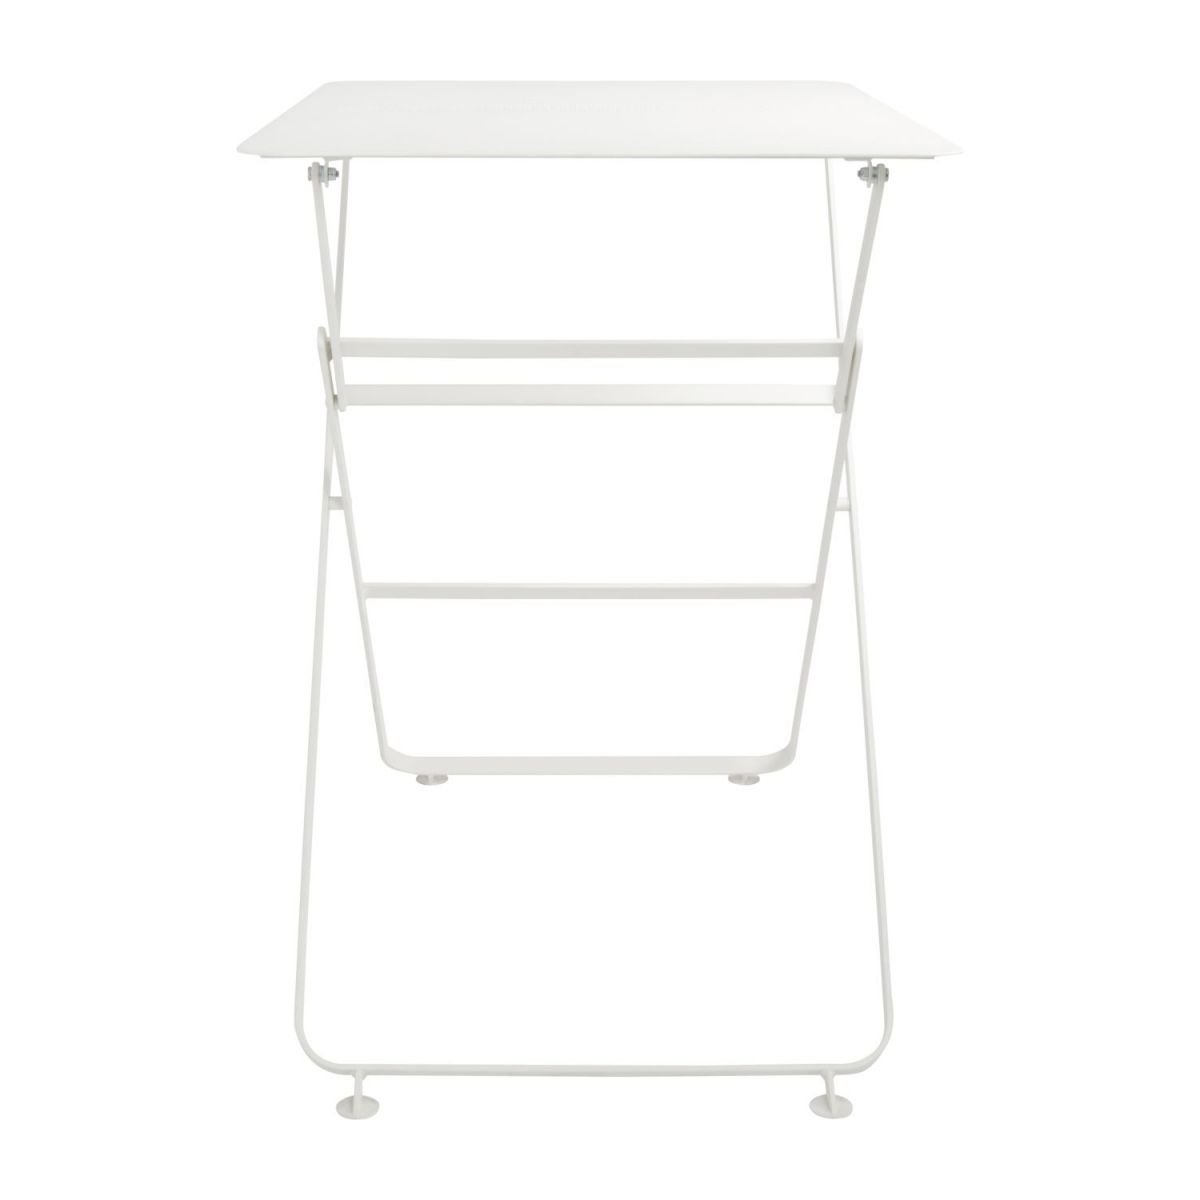 Mesa plegable de metal - Blanco n°5